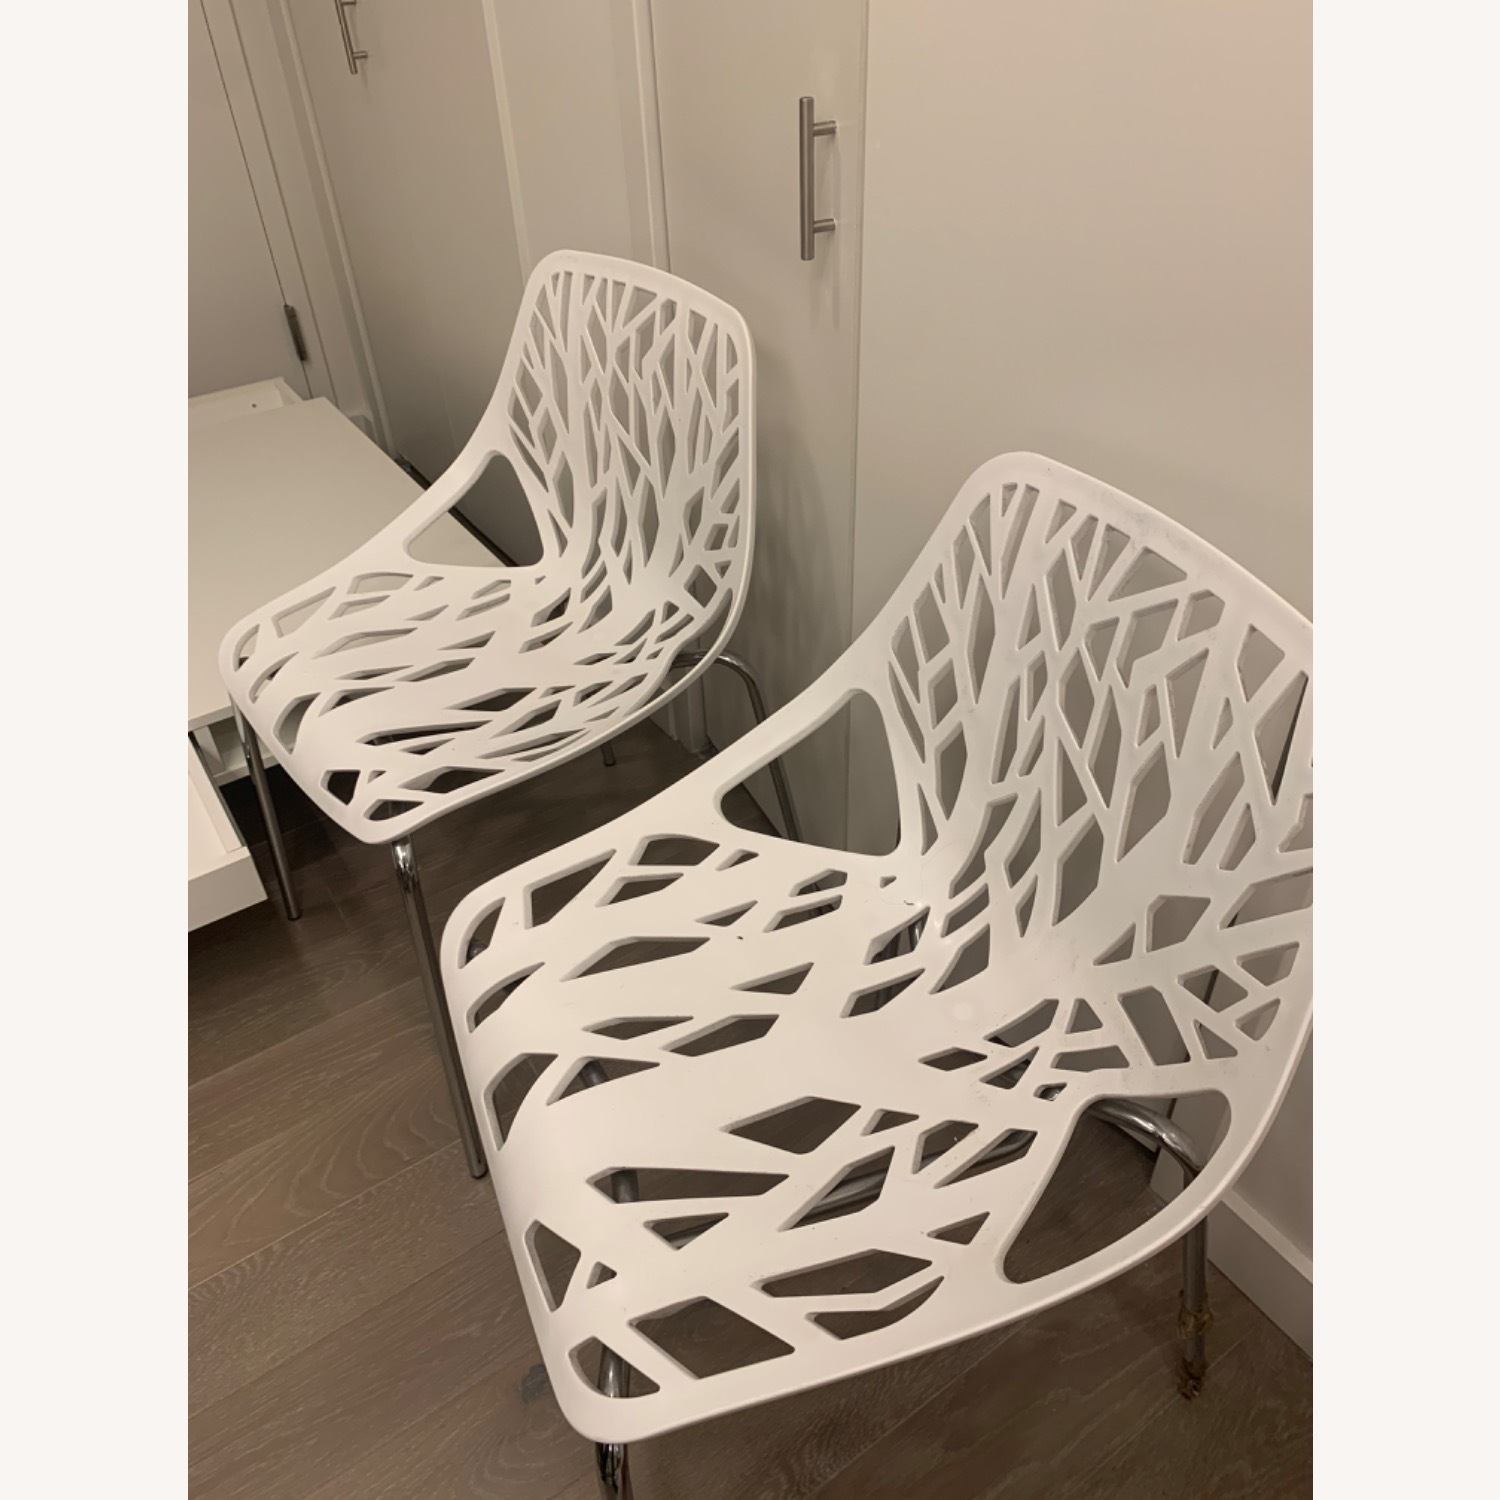 EdgeStar Dining Chairs White with Chrome Legs - image-1